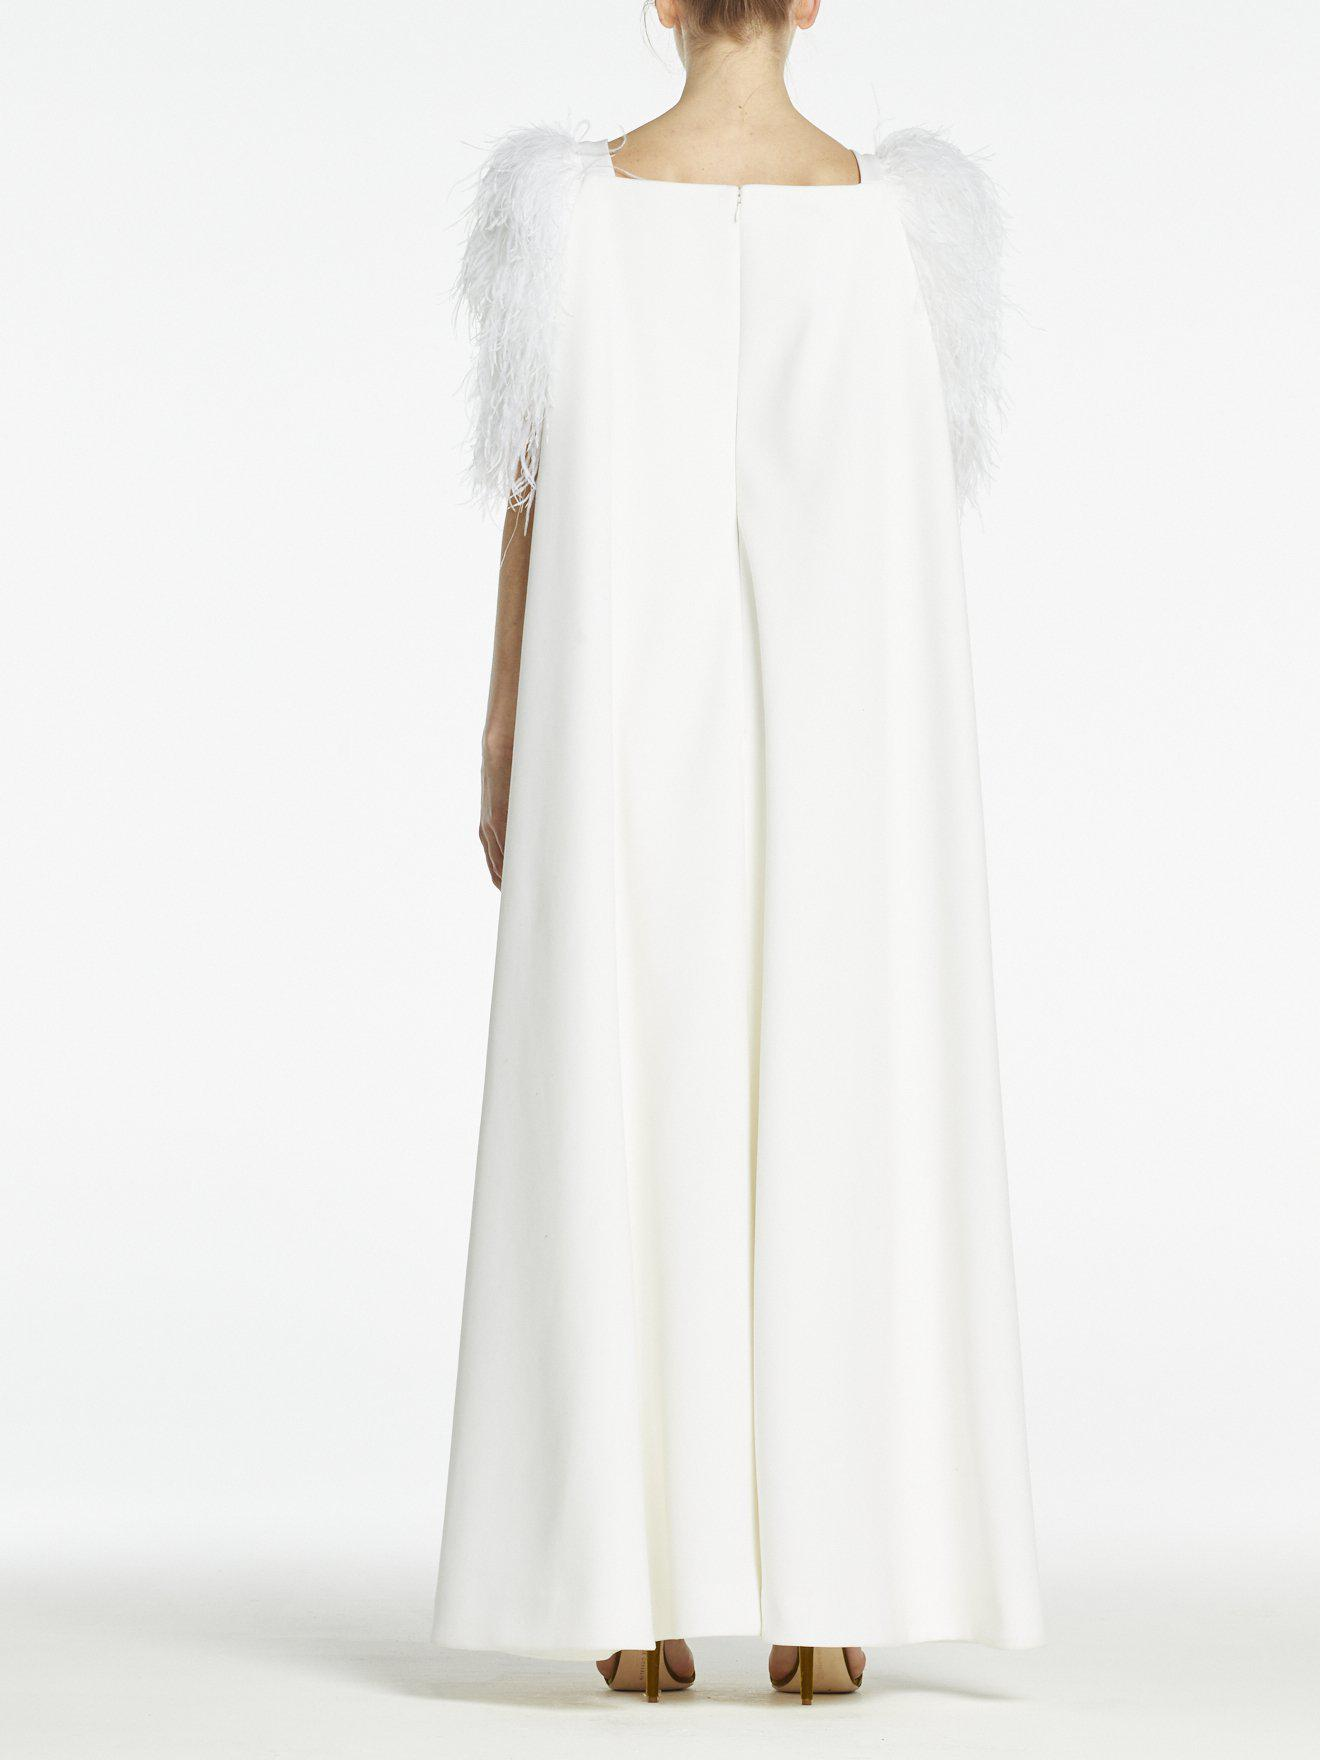 HORTENSE GOWN PURE WHITE CREPE 3